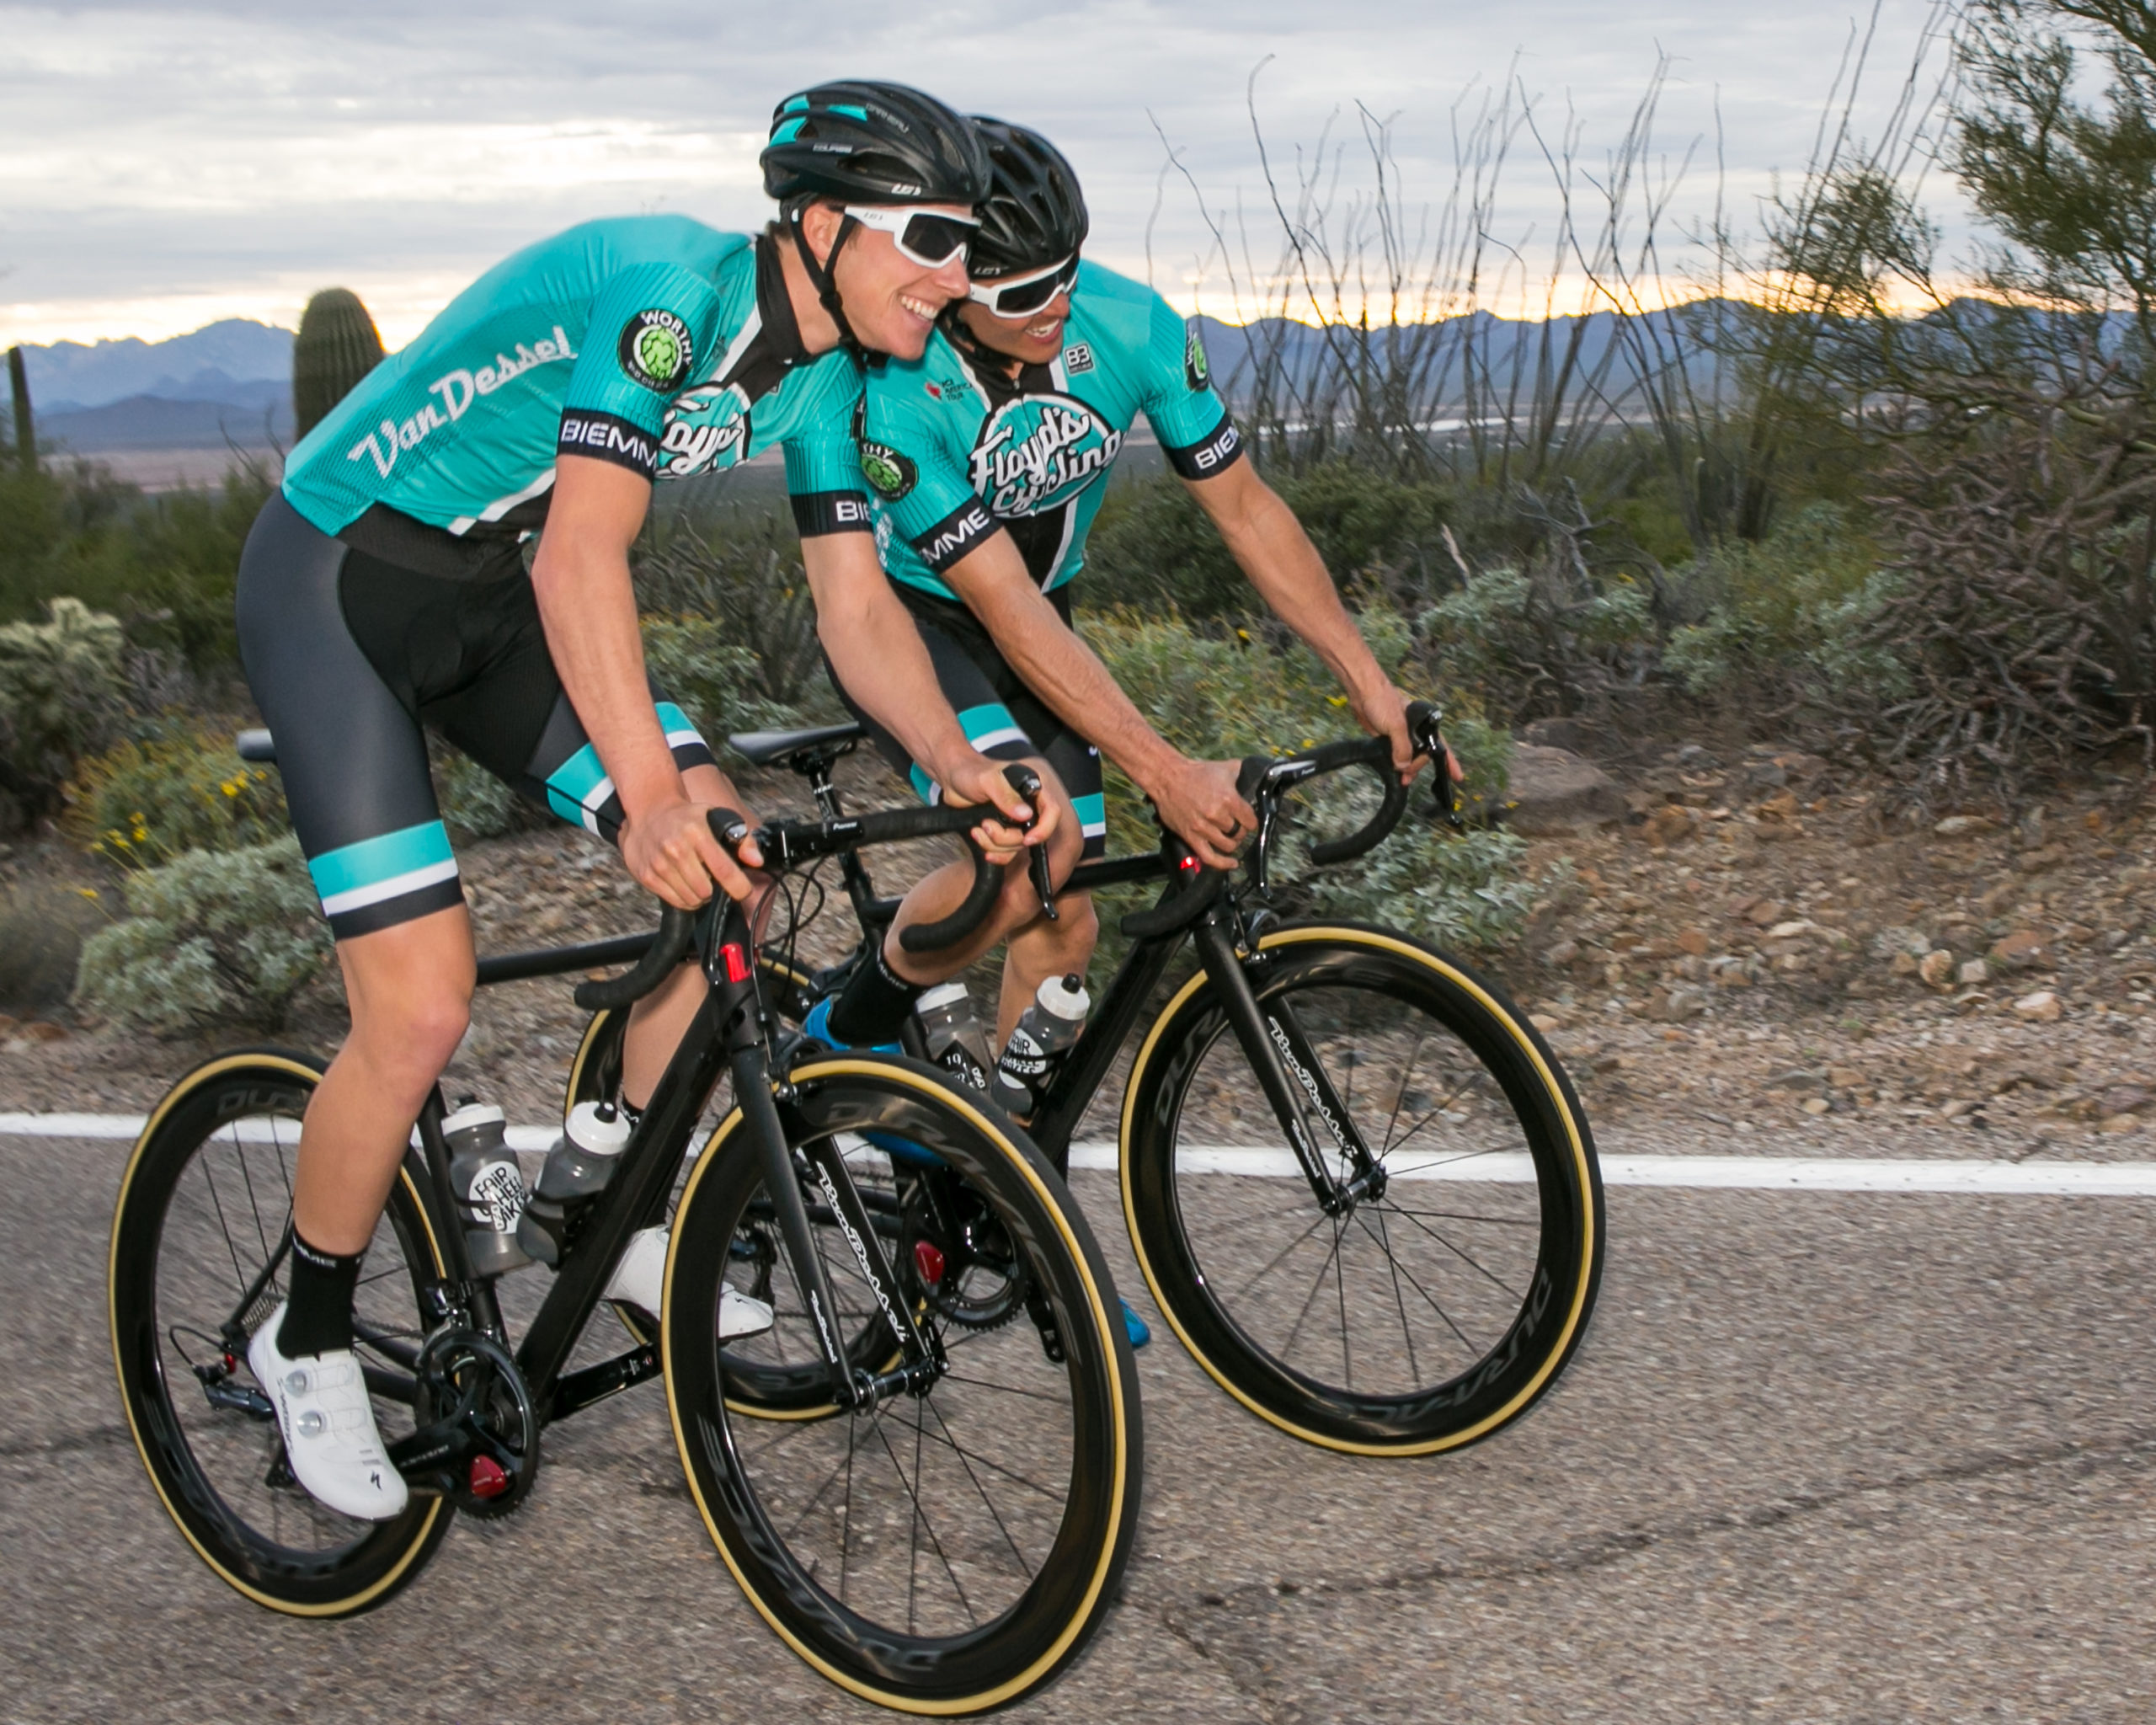 Nickolas Zukoswky and Travis McCabe bump shoulders in play at the end of the long day of promotional photography for Floyd's Pro Cycling Team.